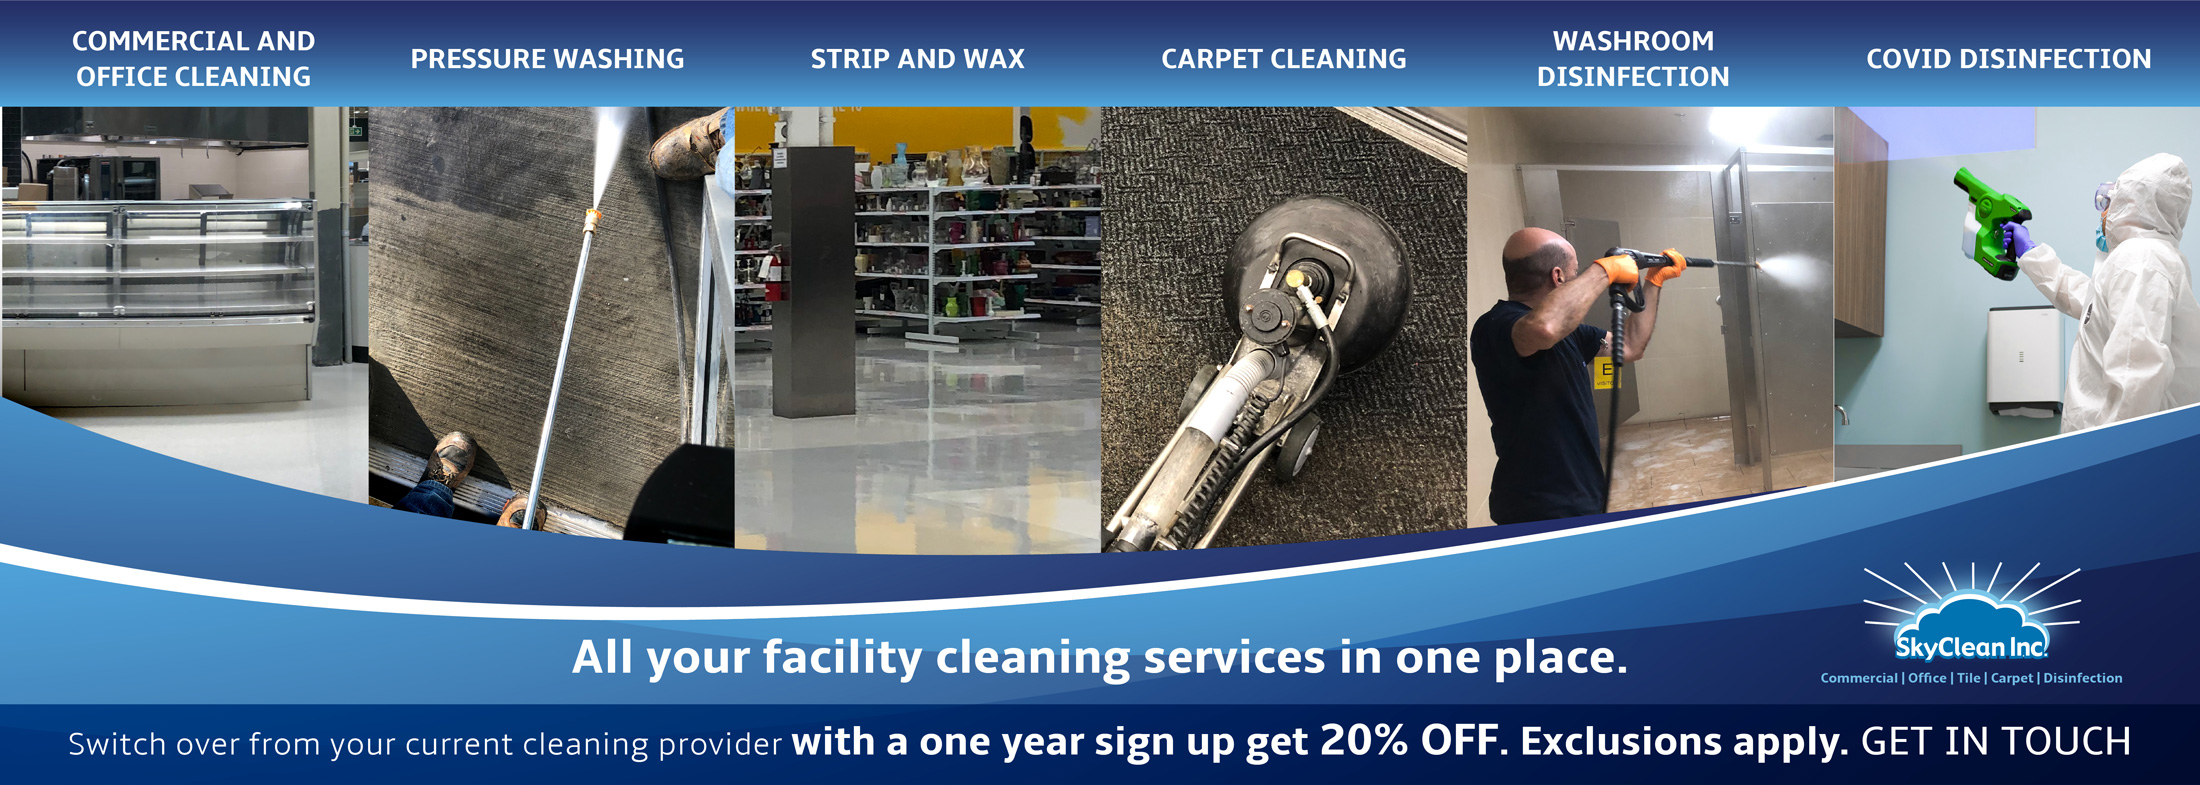 All your Facility Cleaning Services at One Place - Carpet Cleaning Services London ON by SkyClean Inc.